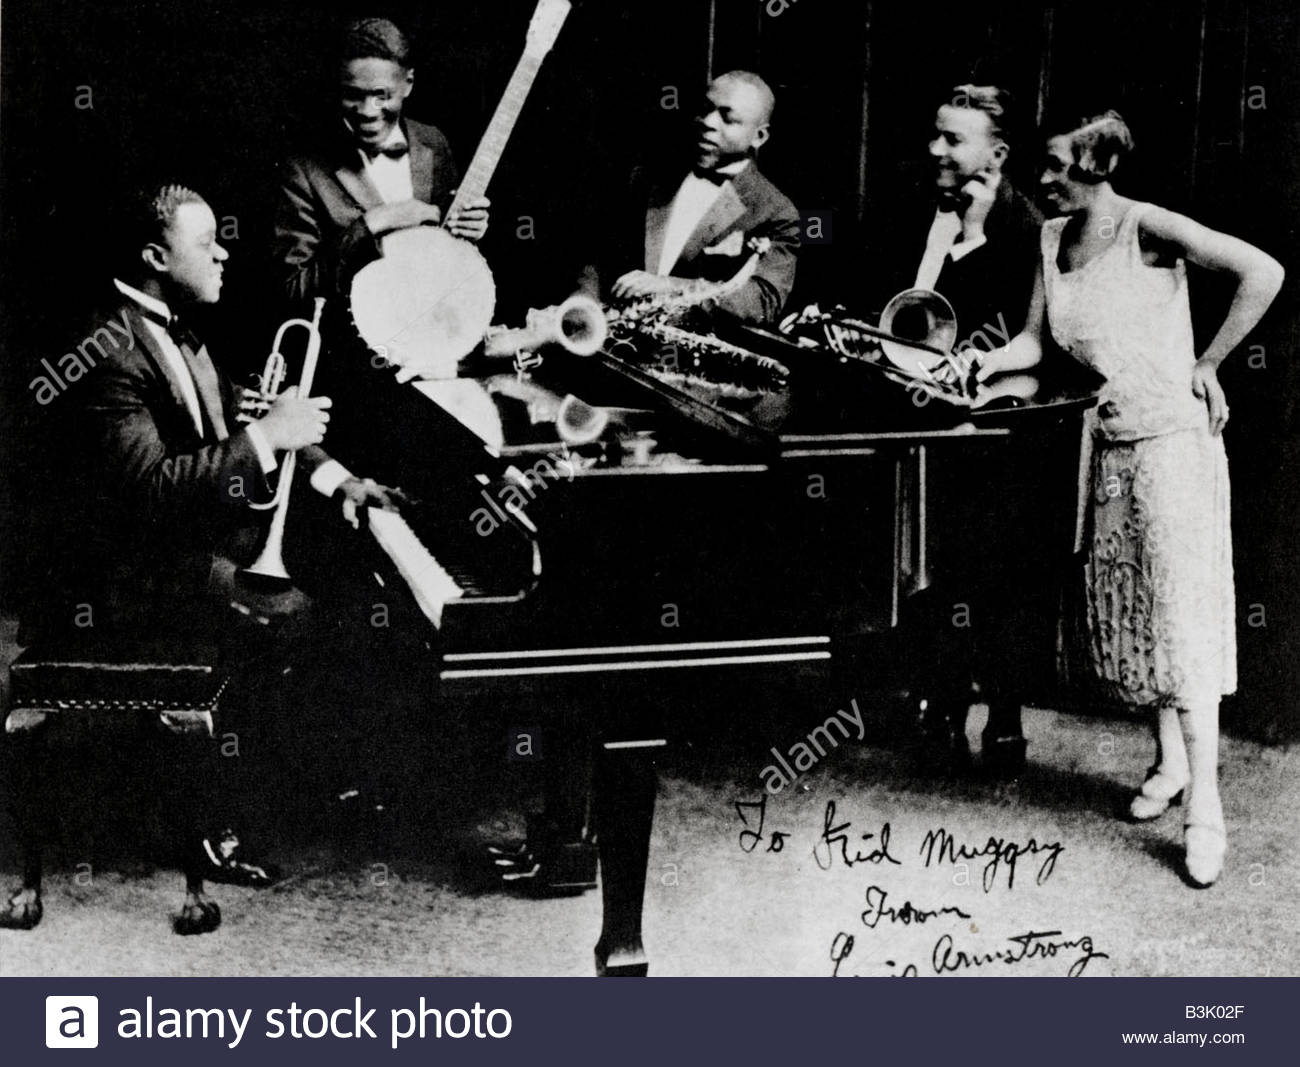 King Oliver S Creole Jazz Band With Louis Armstrong At